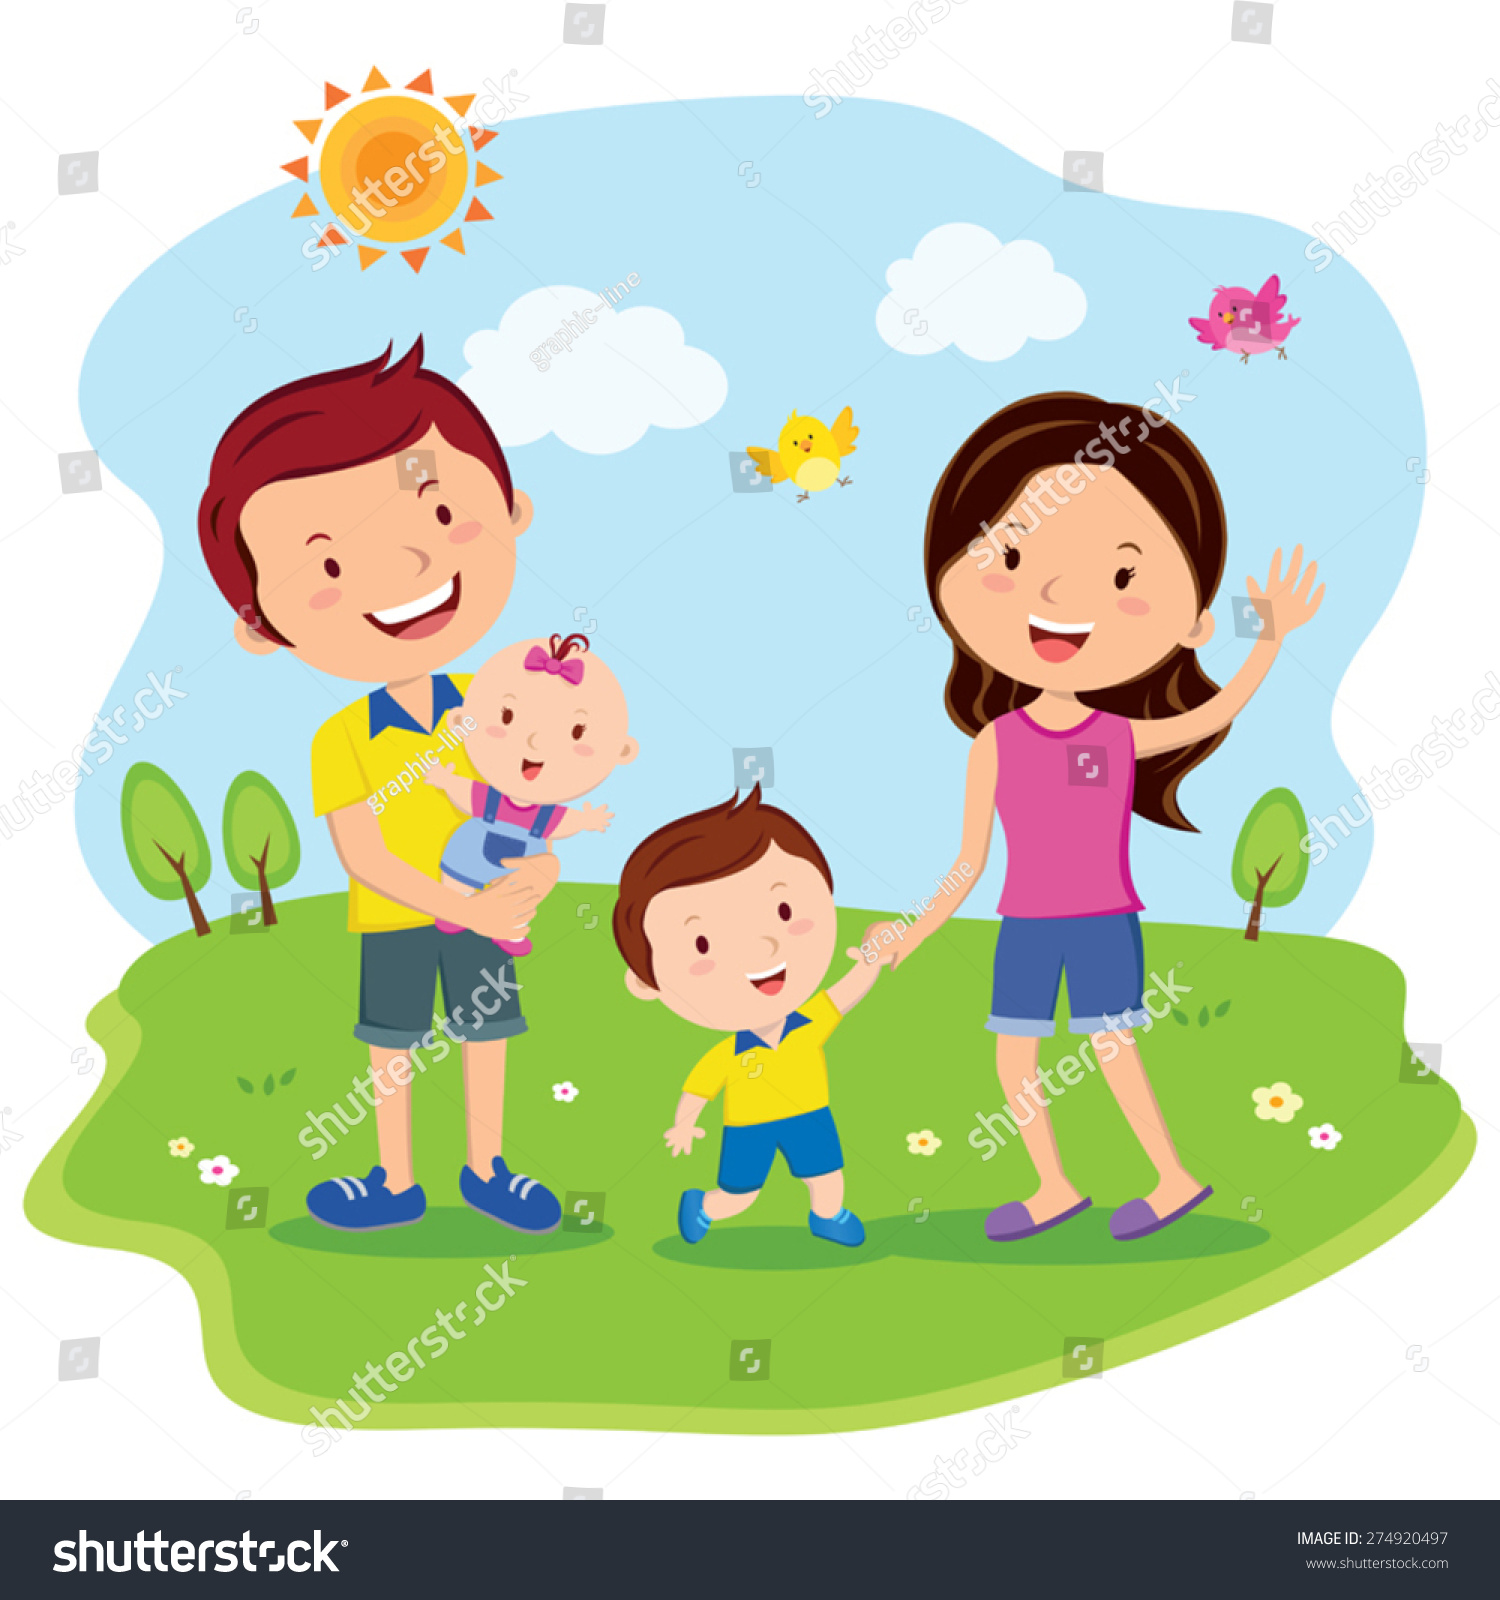 Happy Family Day Cheerful Family Outing Stock Vector ...